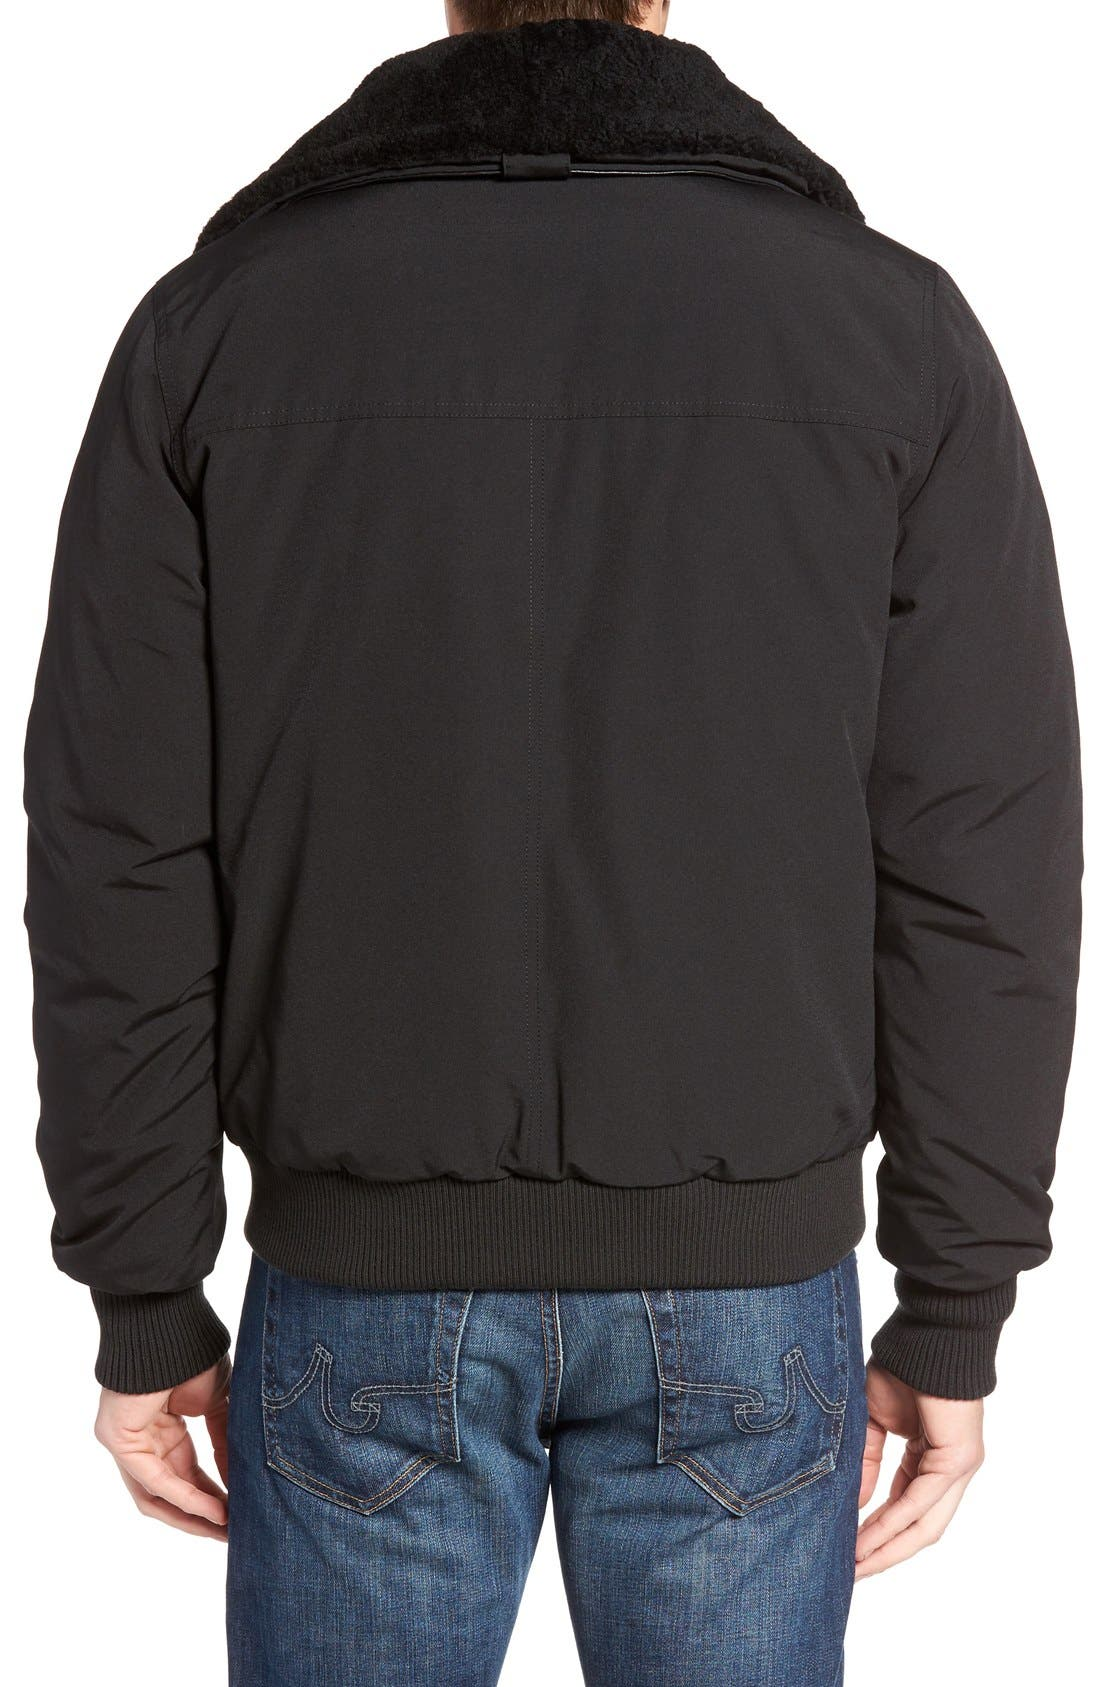 Alternate Image 2  - Canada Goose Bromley Down Bomber Jacket with Genuine Shearling Collar